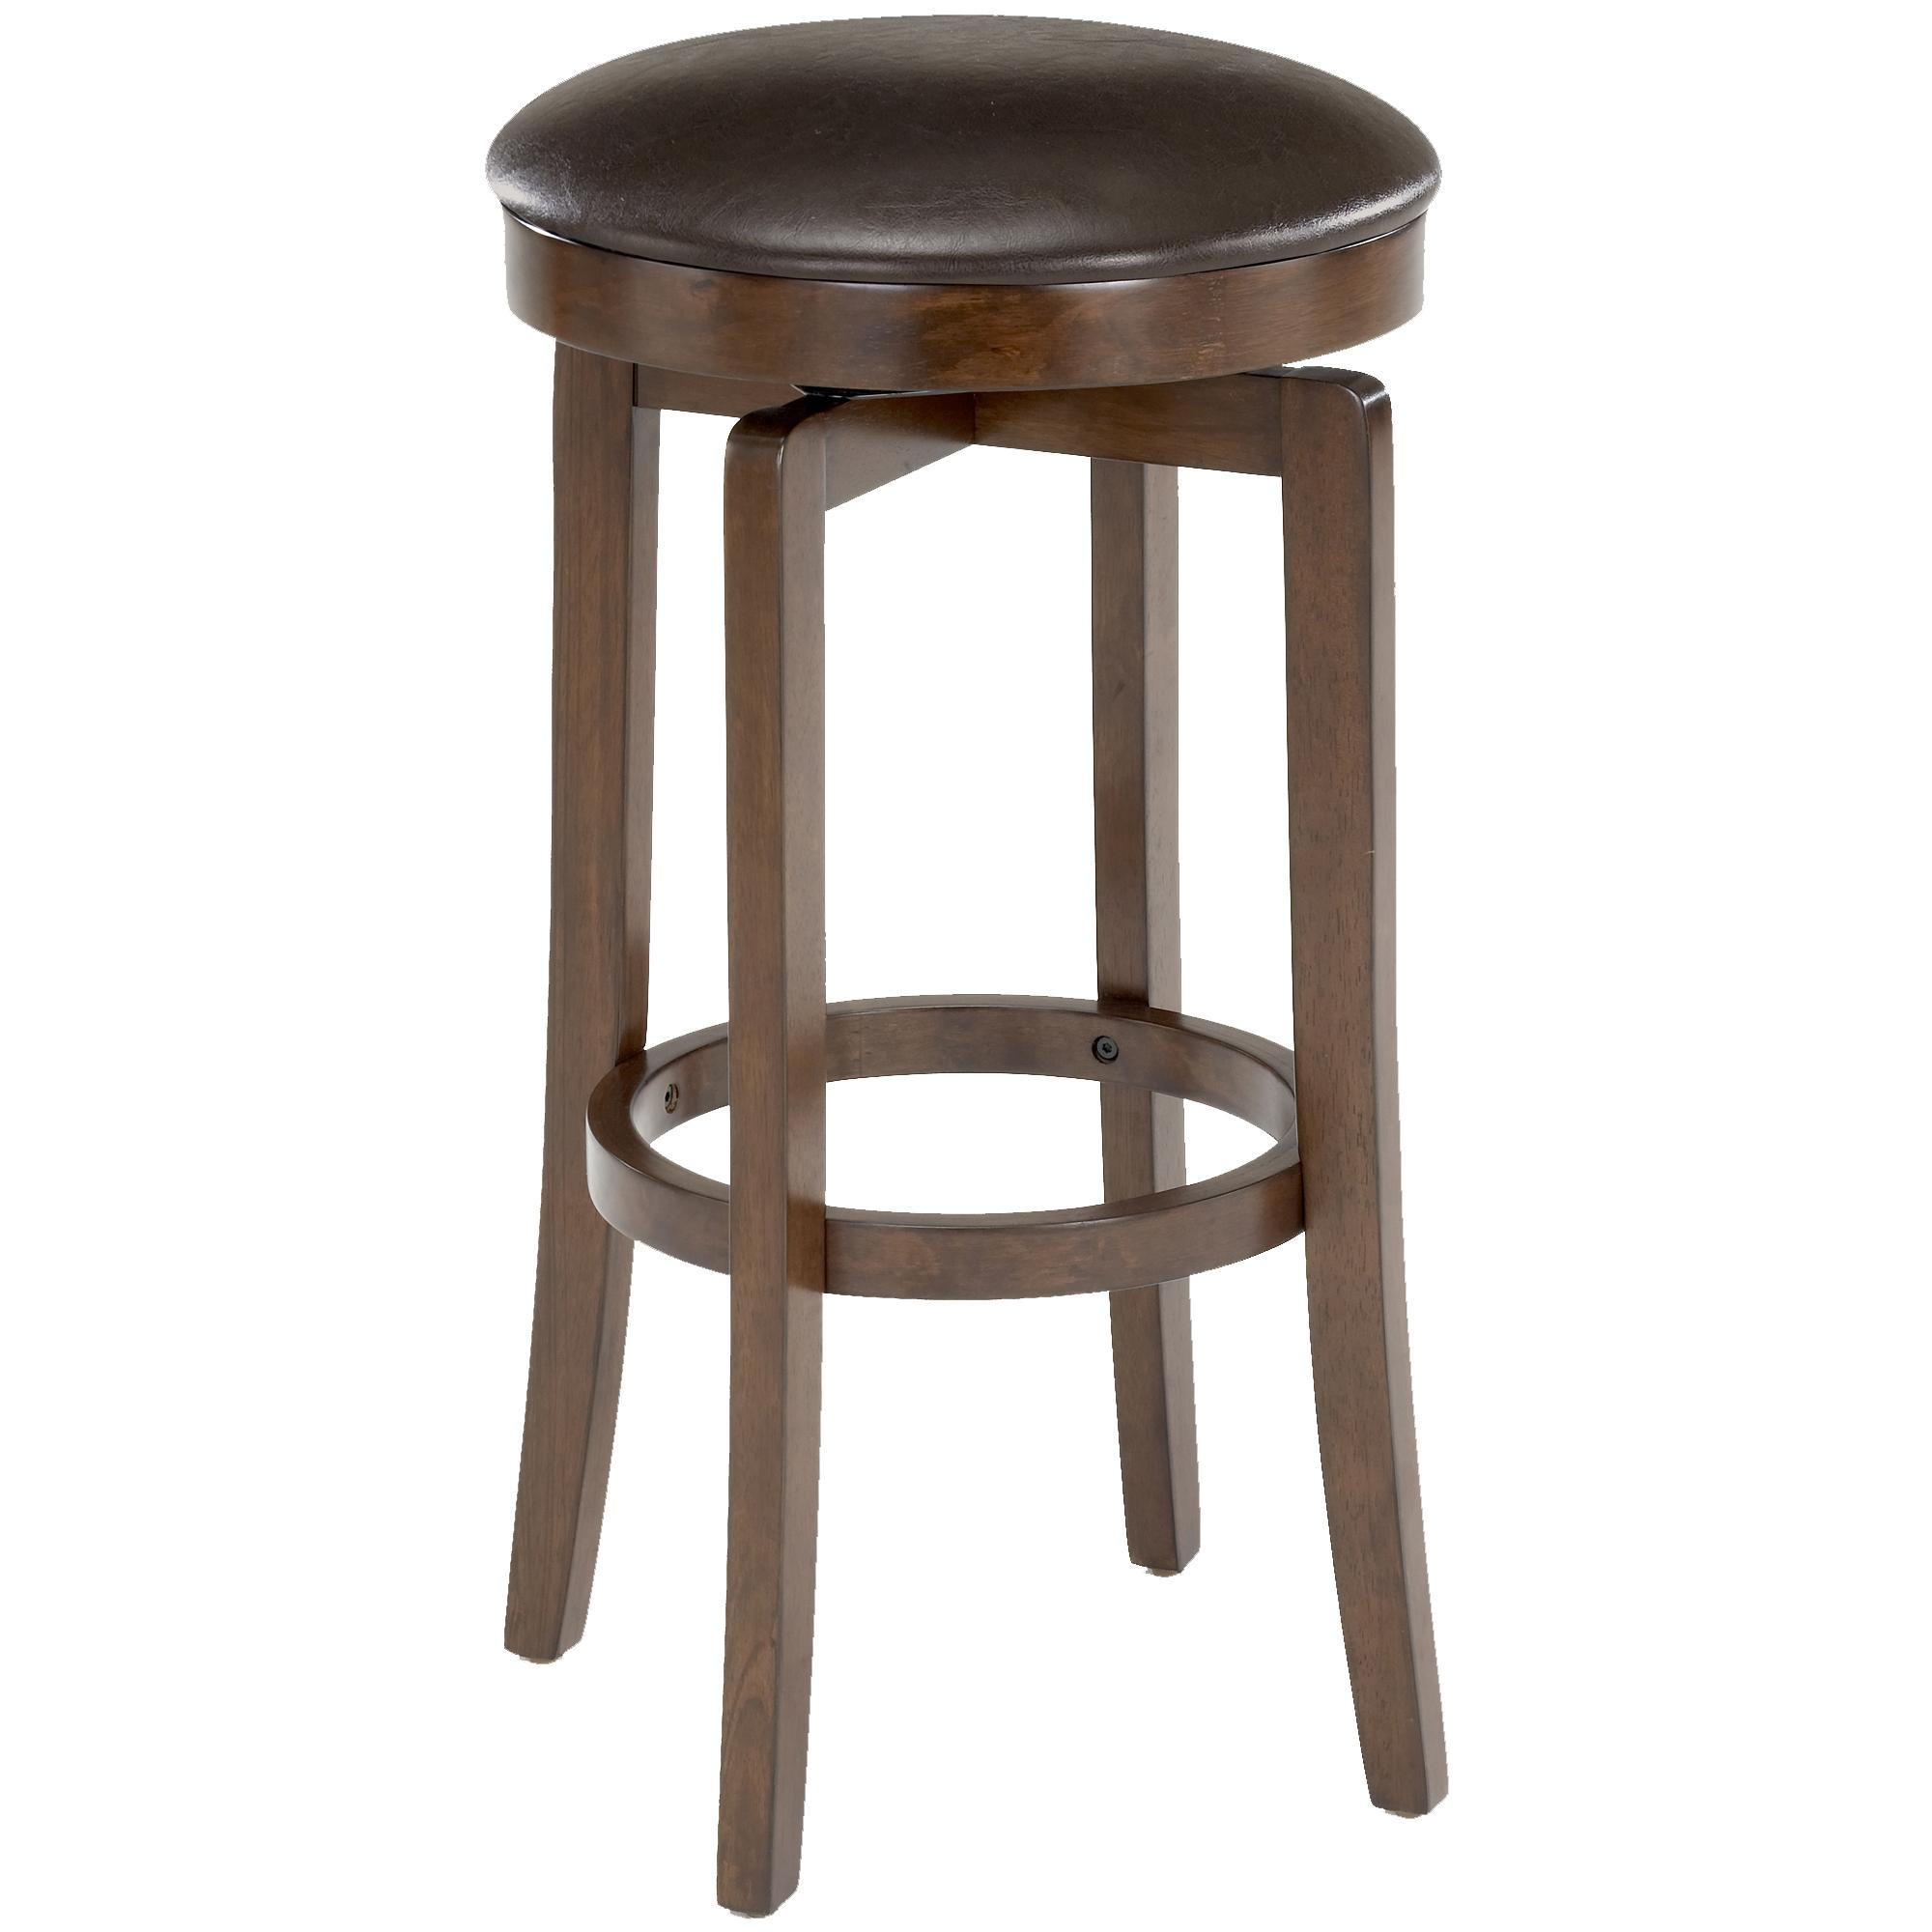 "Hillsdale Backless Bar Stools 25"" O'Shea Backless Counter Stool - Item Number: 63454-826"